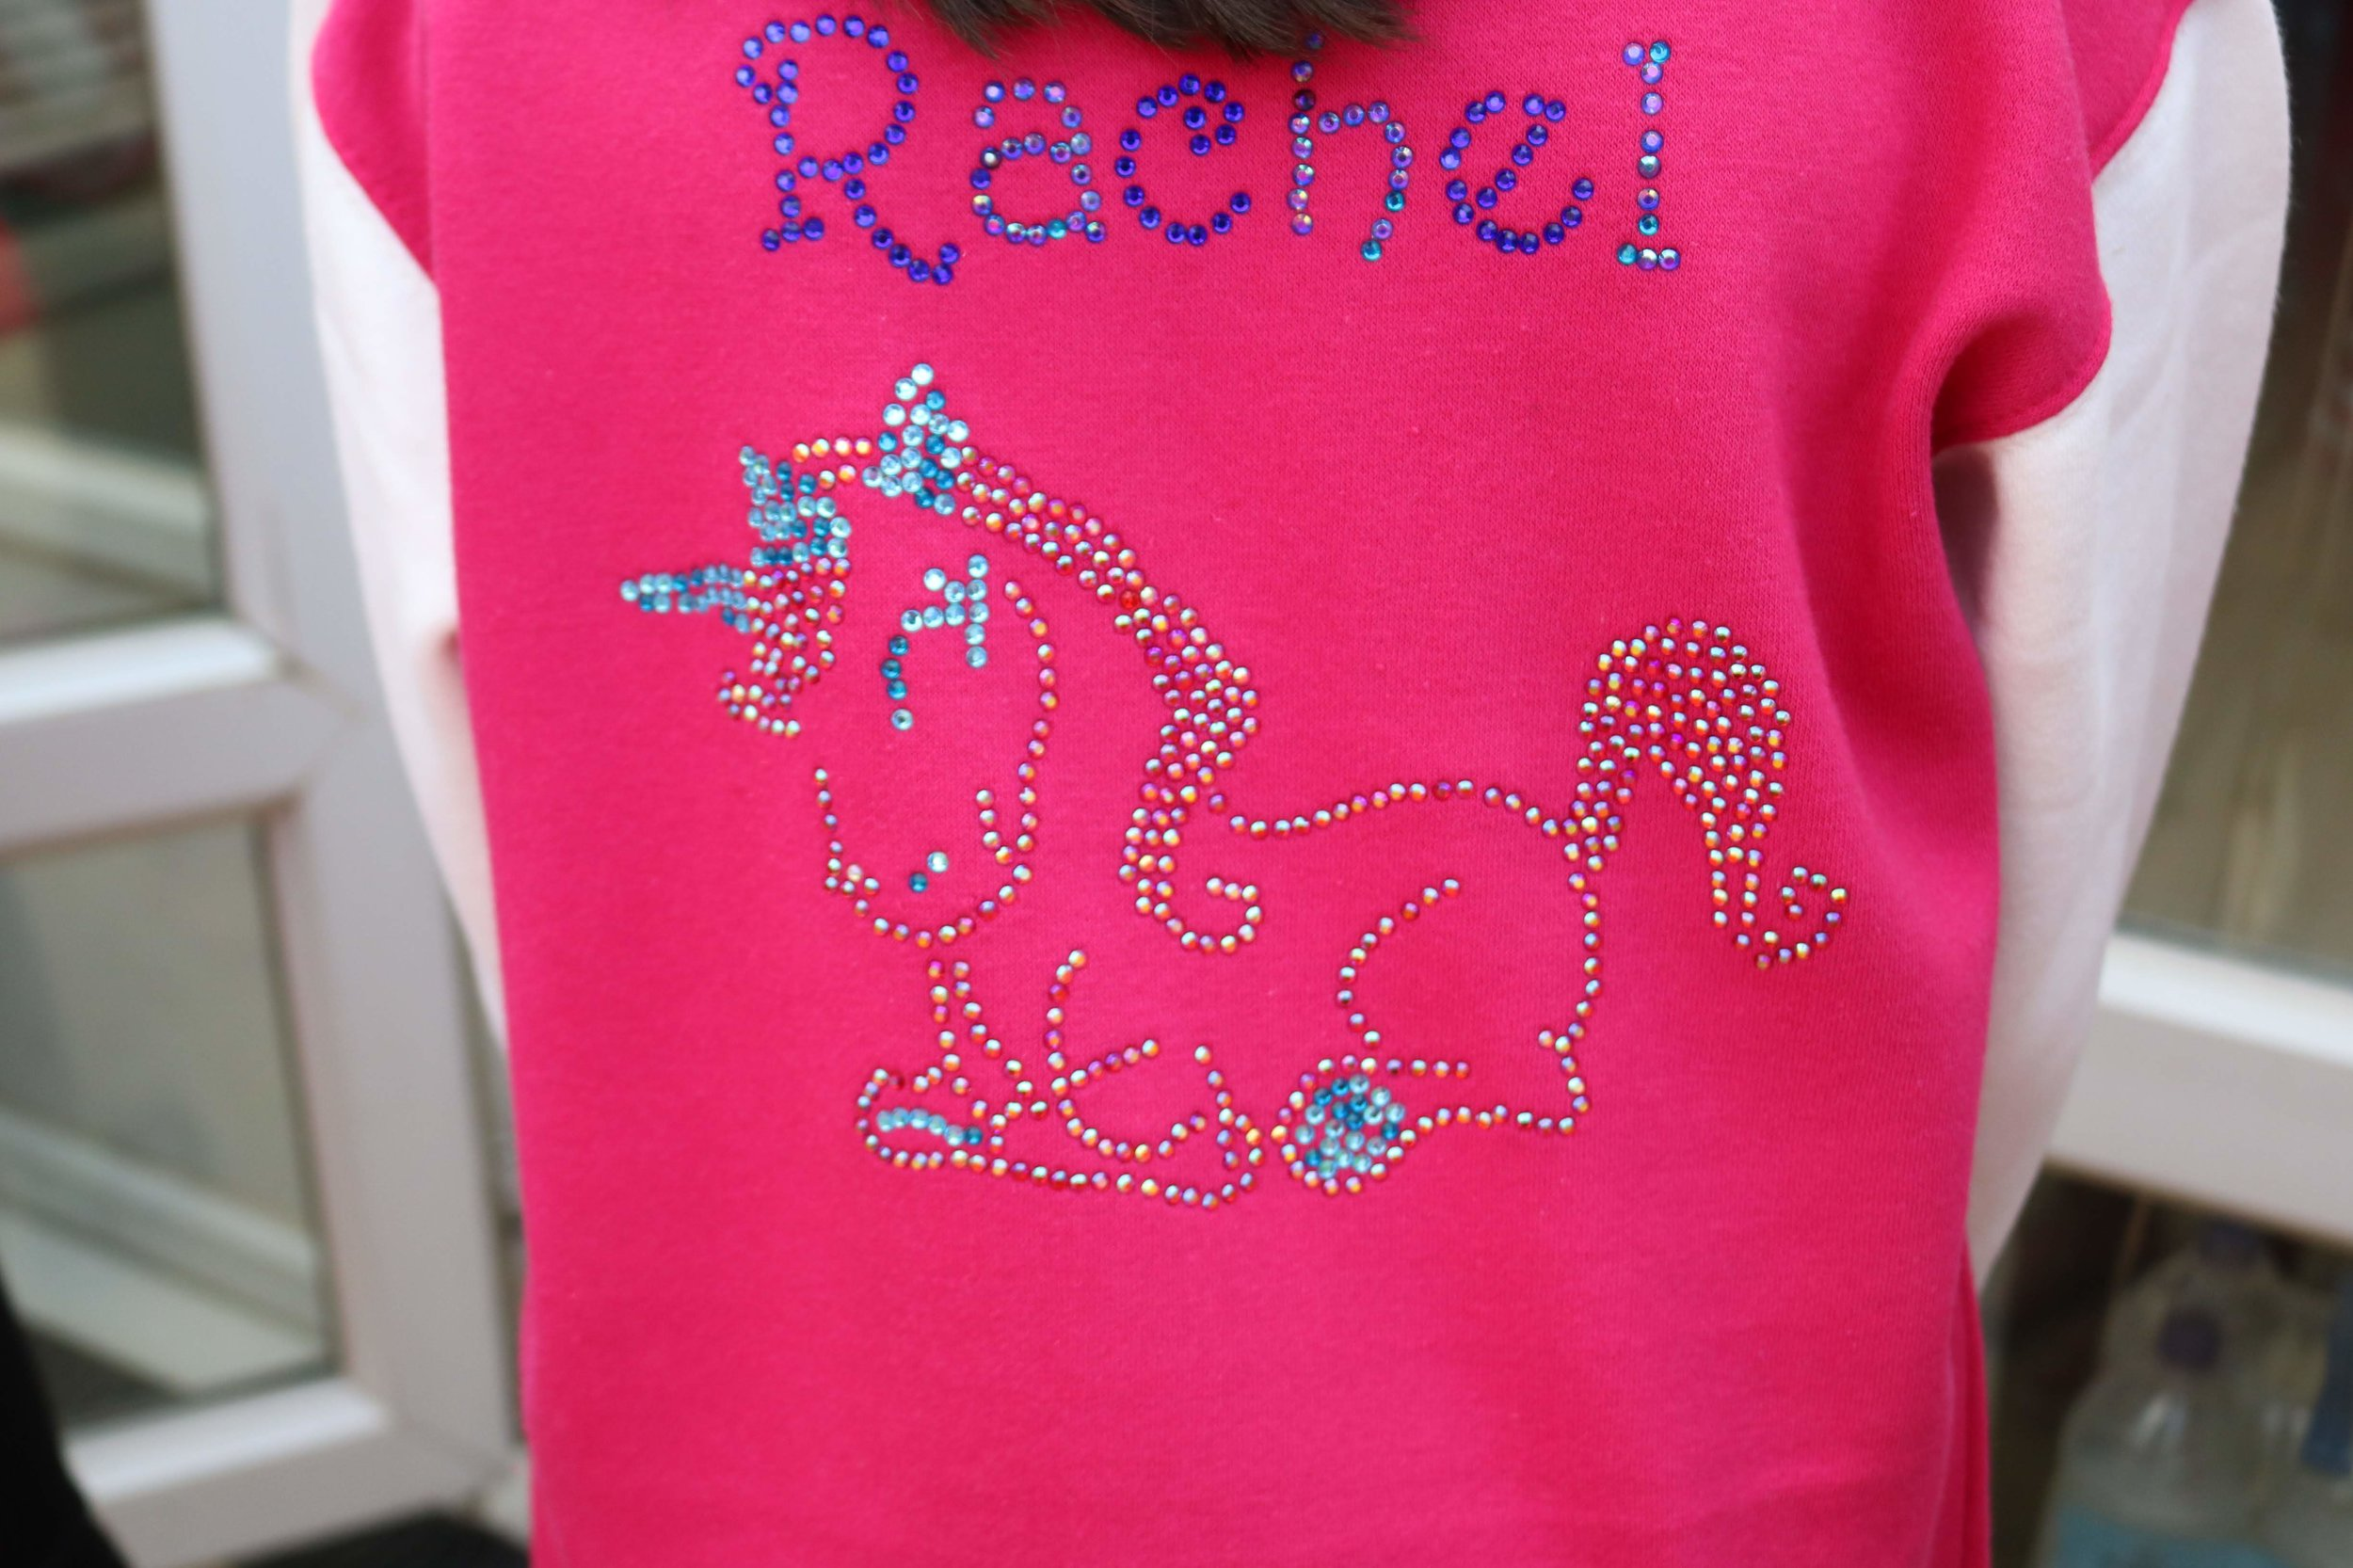 Beautiful rhinestone jacket designed by Rachel